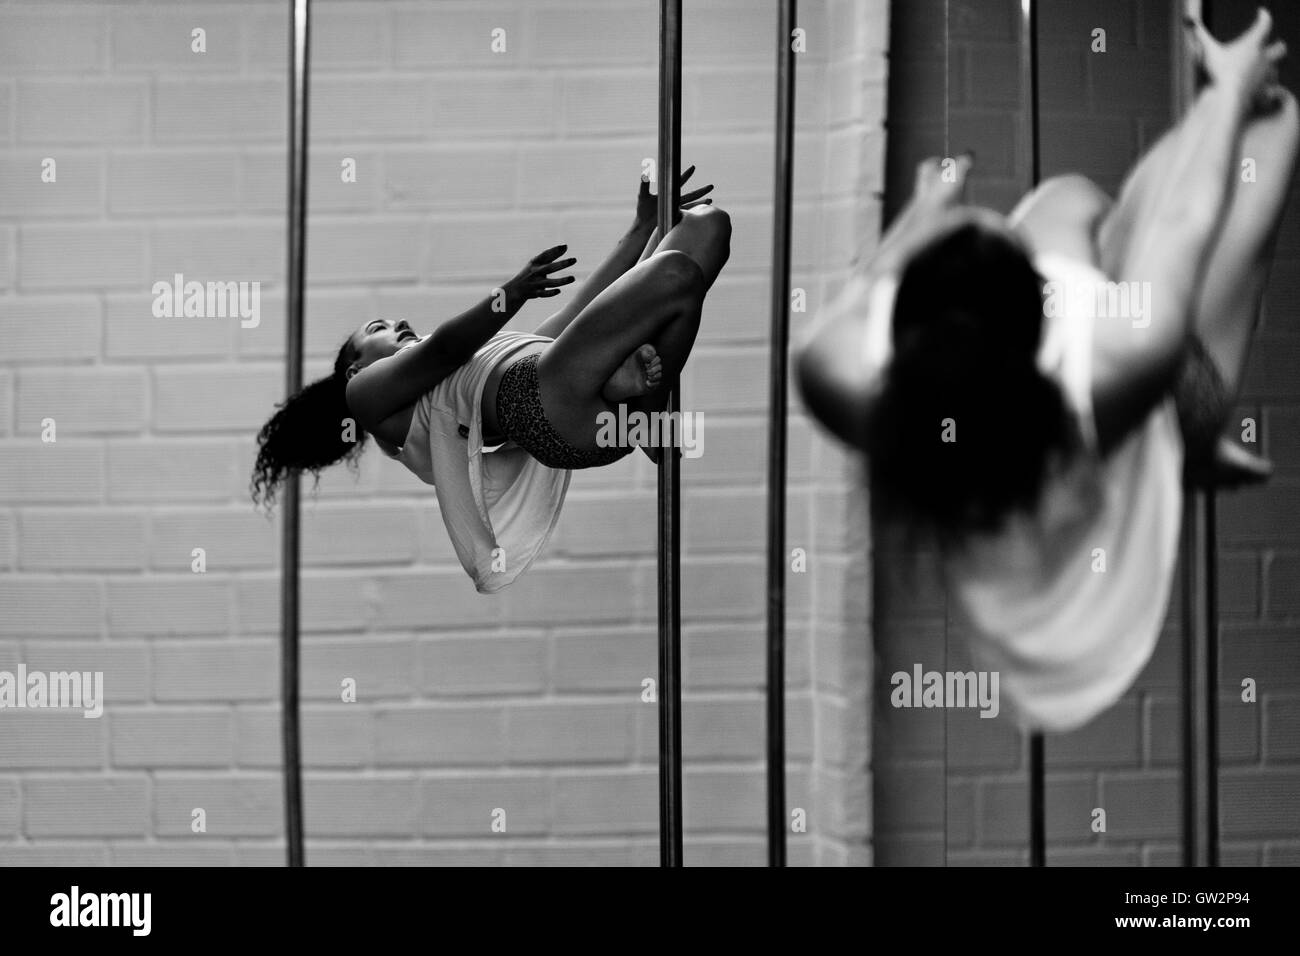 Carolina Echavarria, a young Colombian pole dancer, practices pole dance in Academia Pin Up, a dance studio in Medellín, - Stock Image